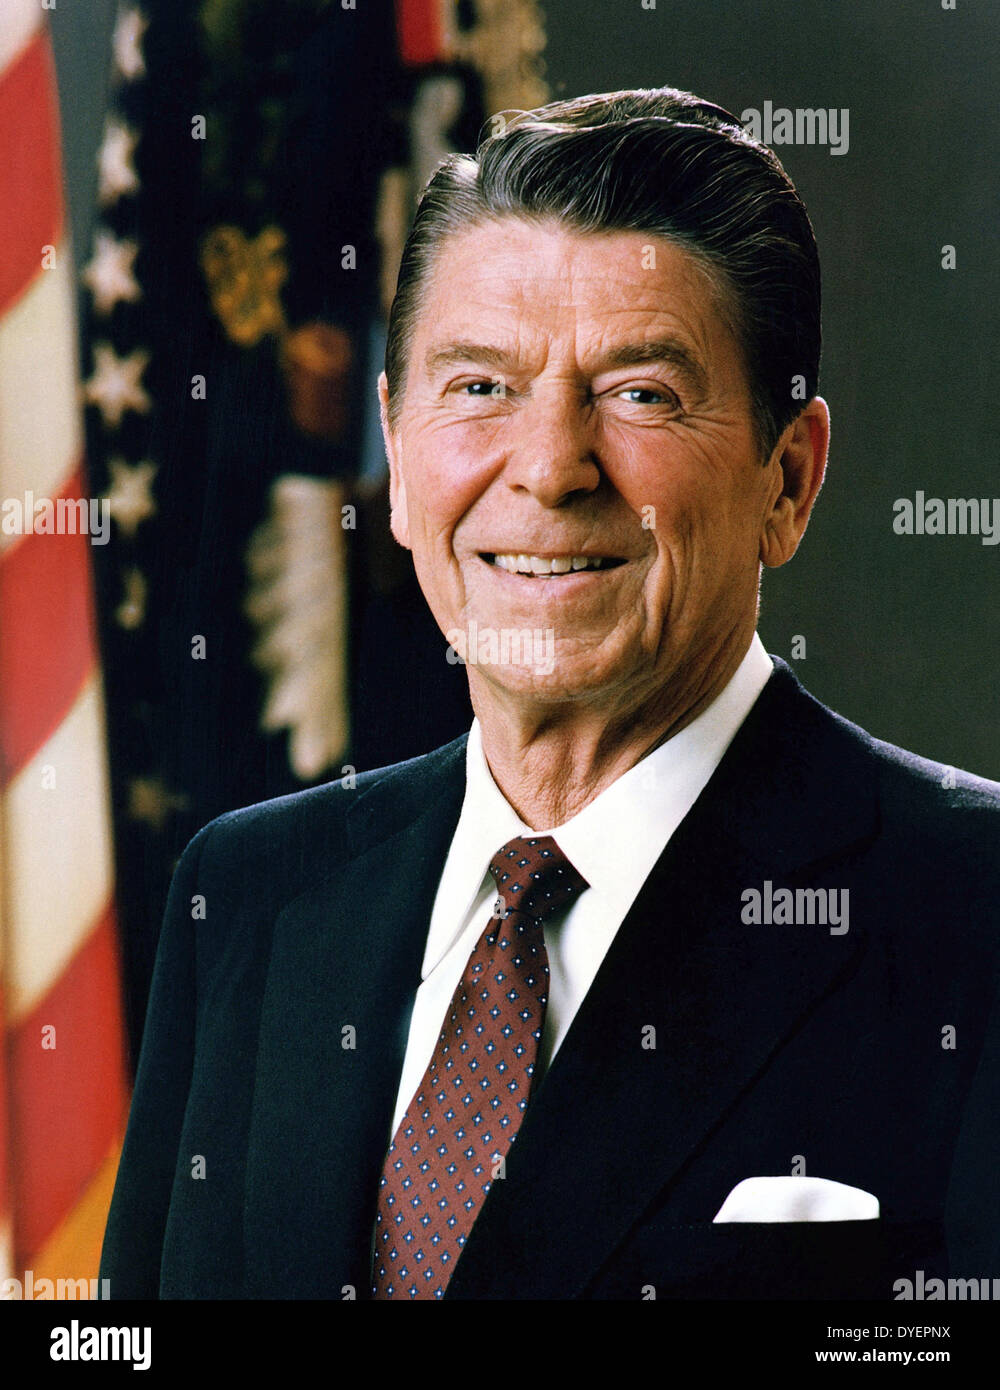 Ronald Reagan 1911-2004. 40th President of the United States. 1981-1989. - Stock Image